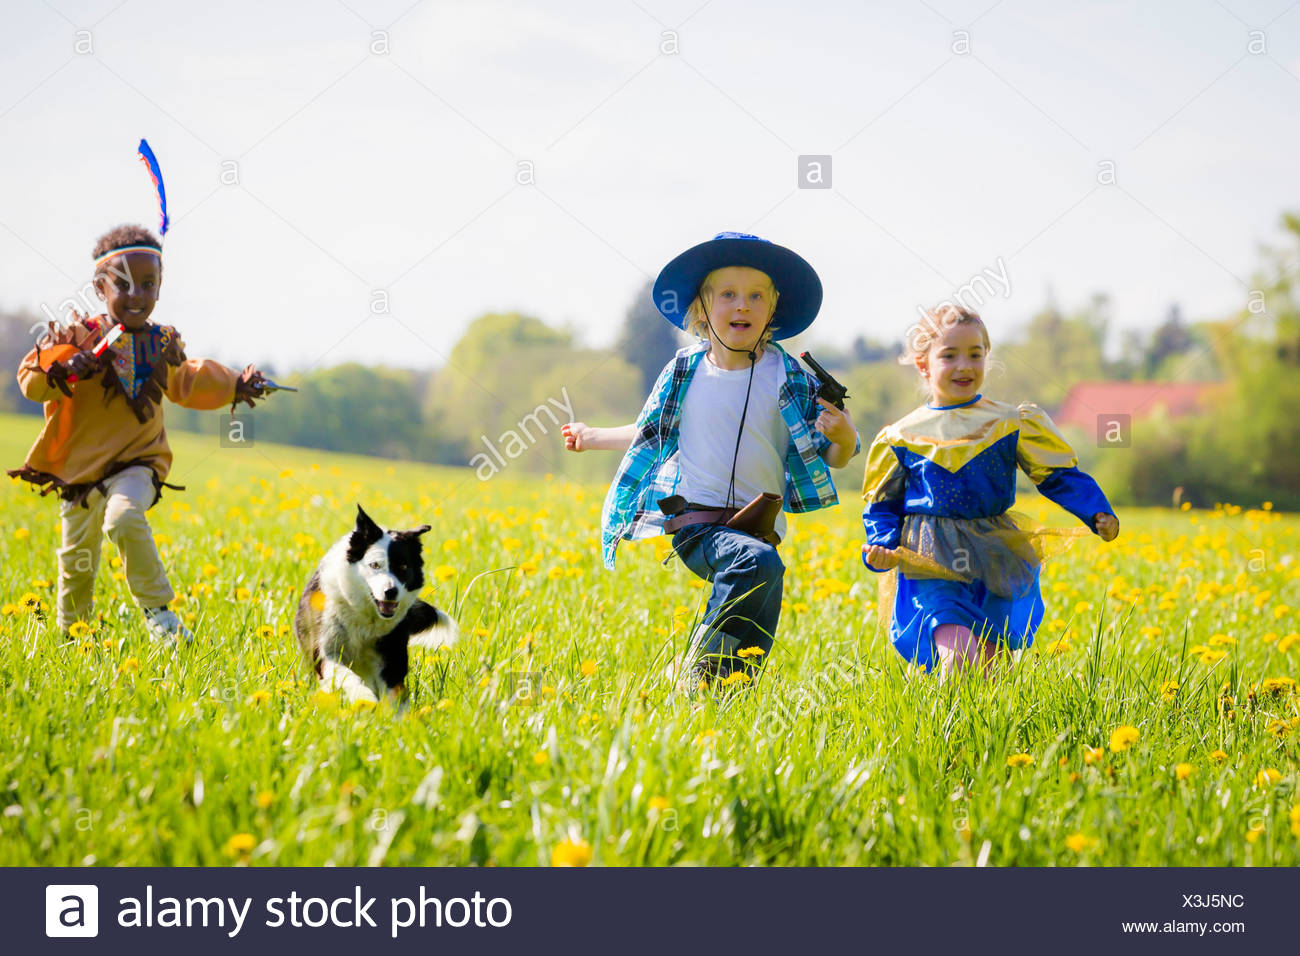 Children playing dress up outdoors - Stock Image